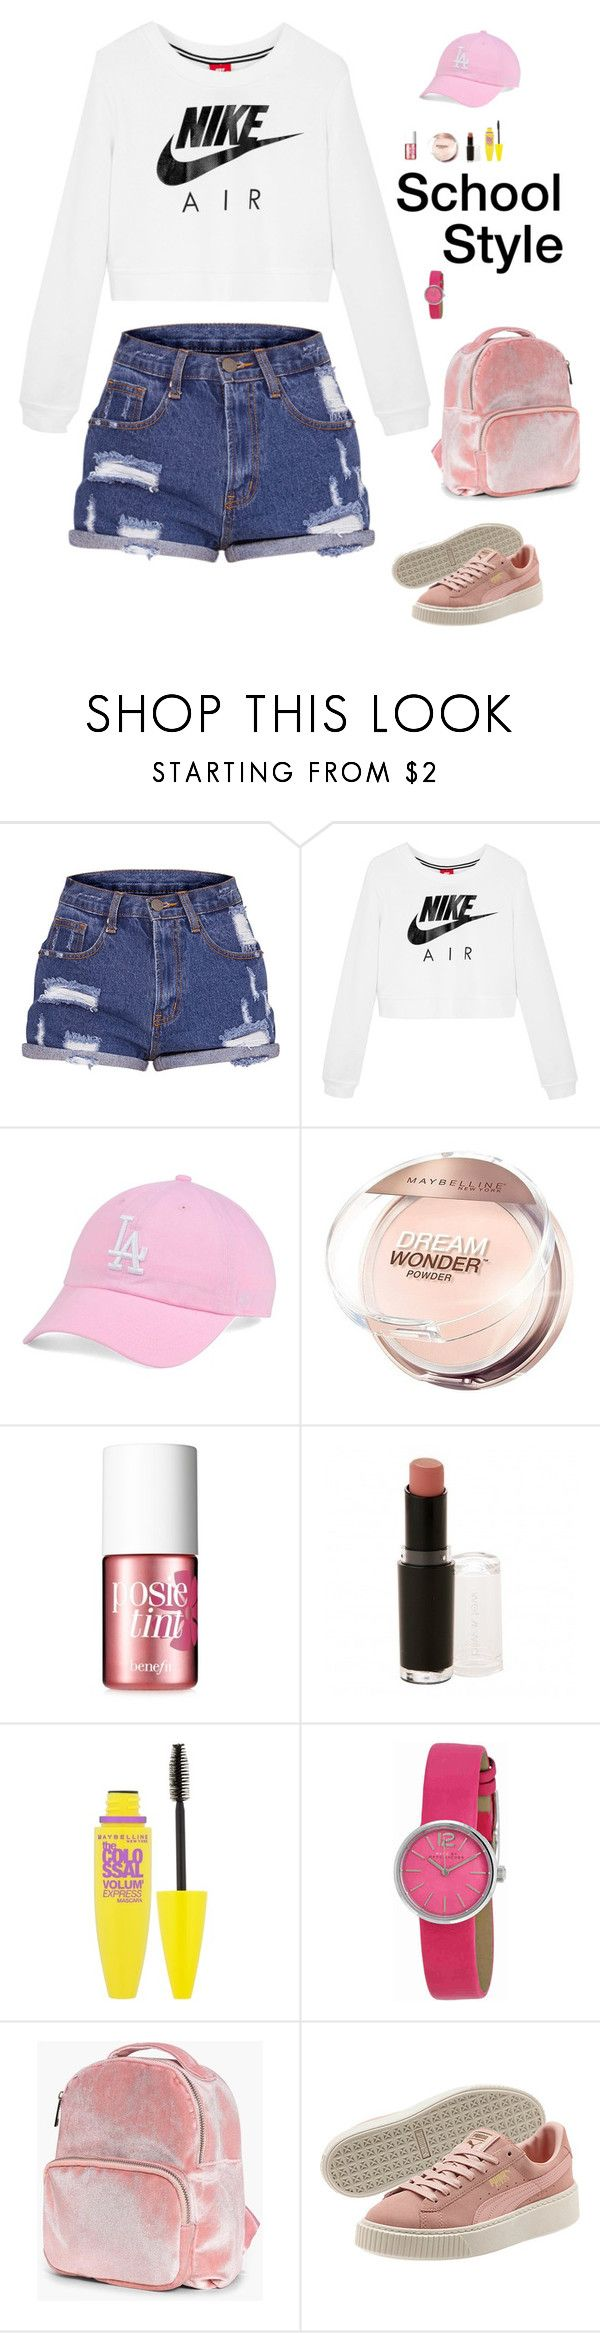 """""""School Style (3)"""" by irisazlou on Polyvore featuring NIKE, '47 Brand, Maybelline, Benefit, Wet n Wild, Marc by Marc Jacobs and Boohoo"""